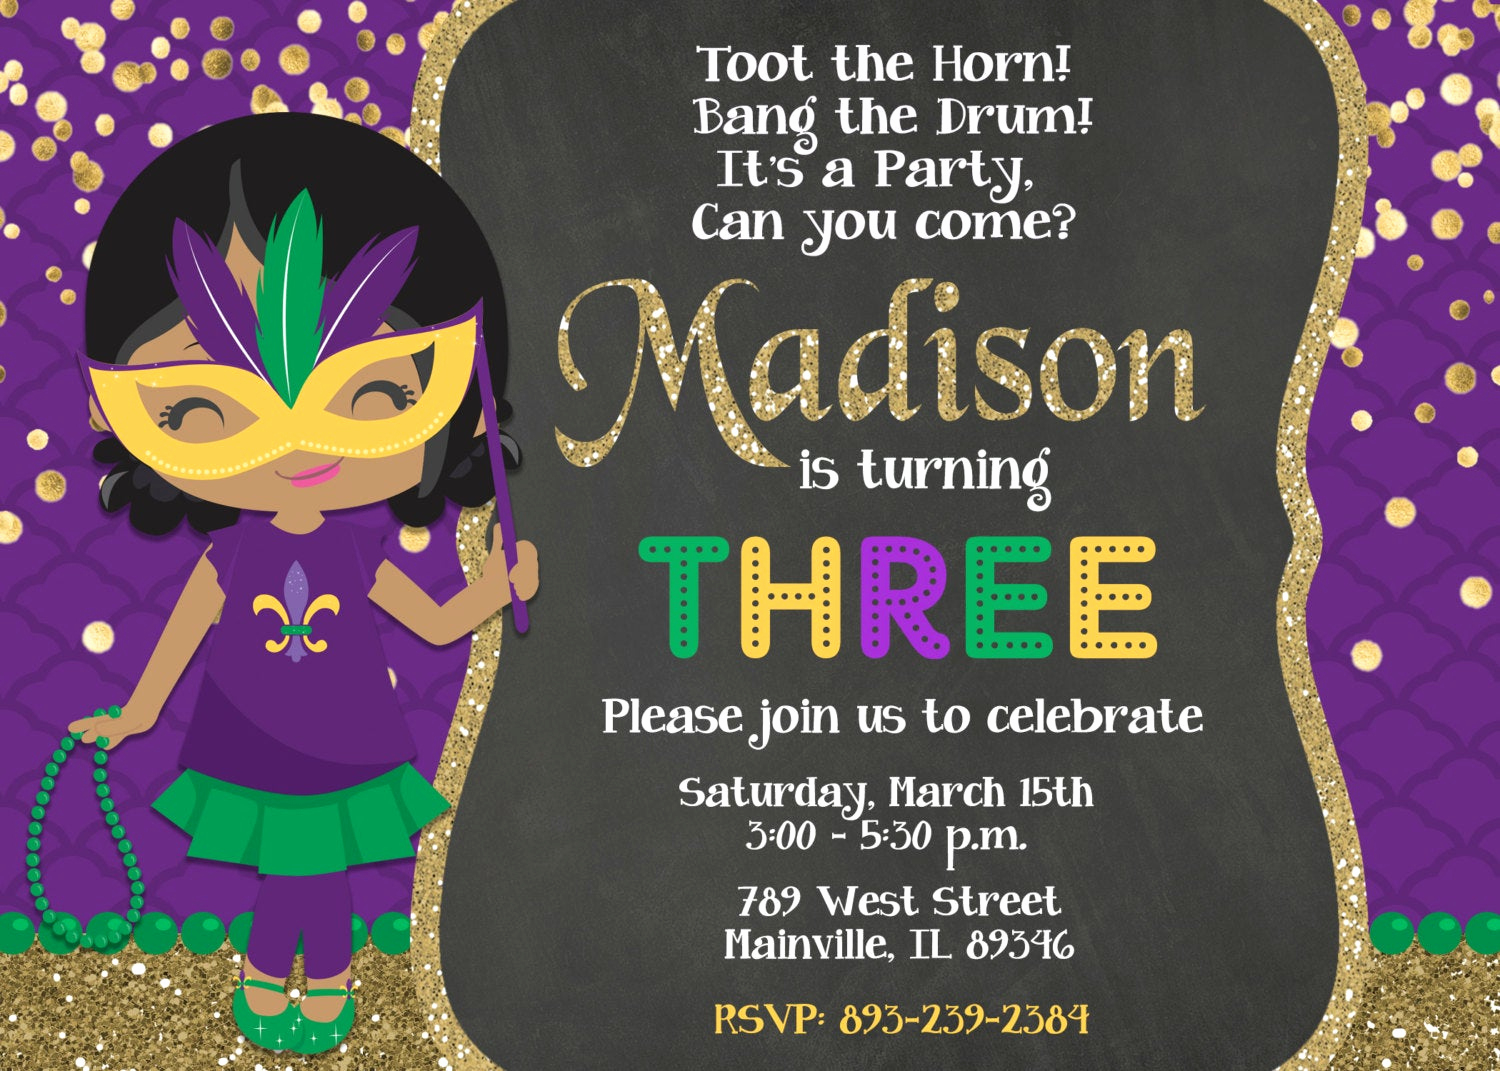 Mardi Gras Invitation Ideas Best Of Mardi Gras Birthday Party Invitation Mardi Gras Party theme